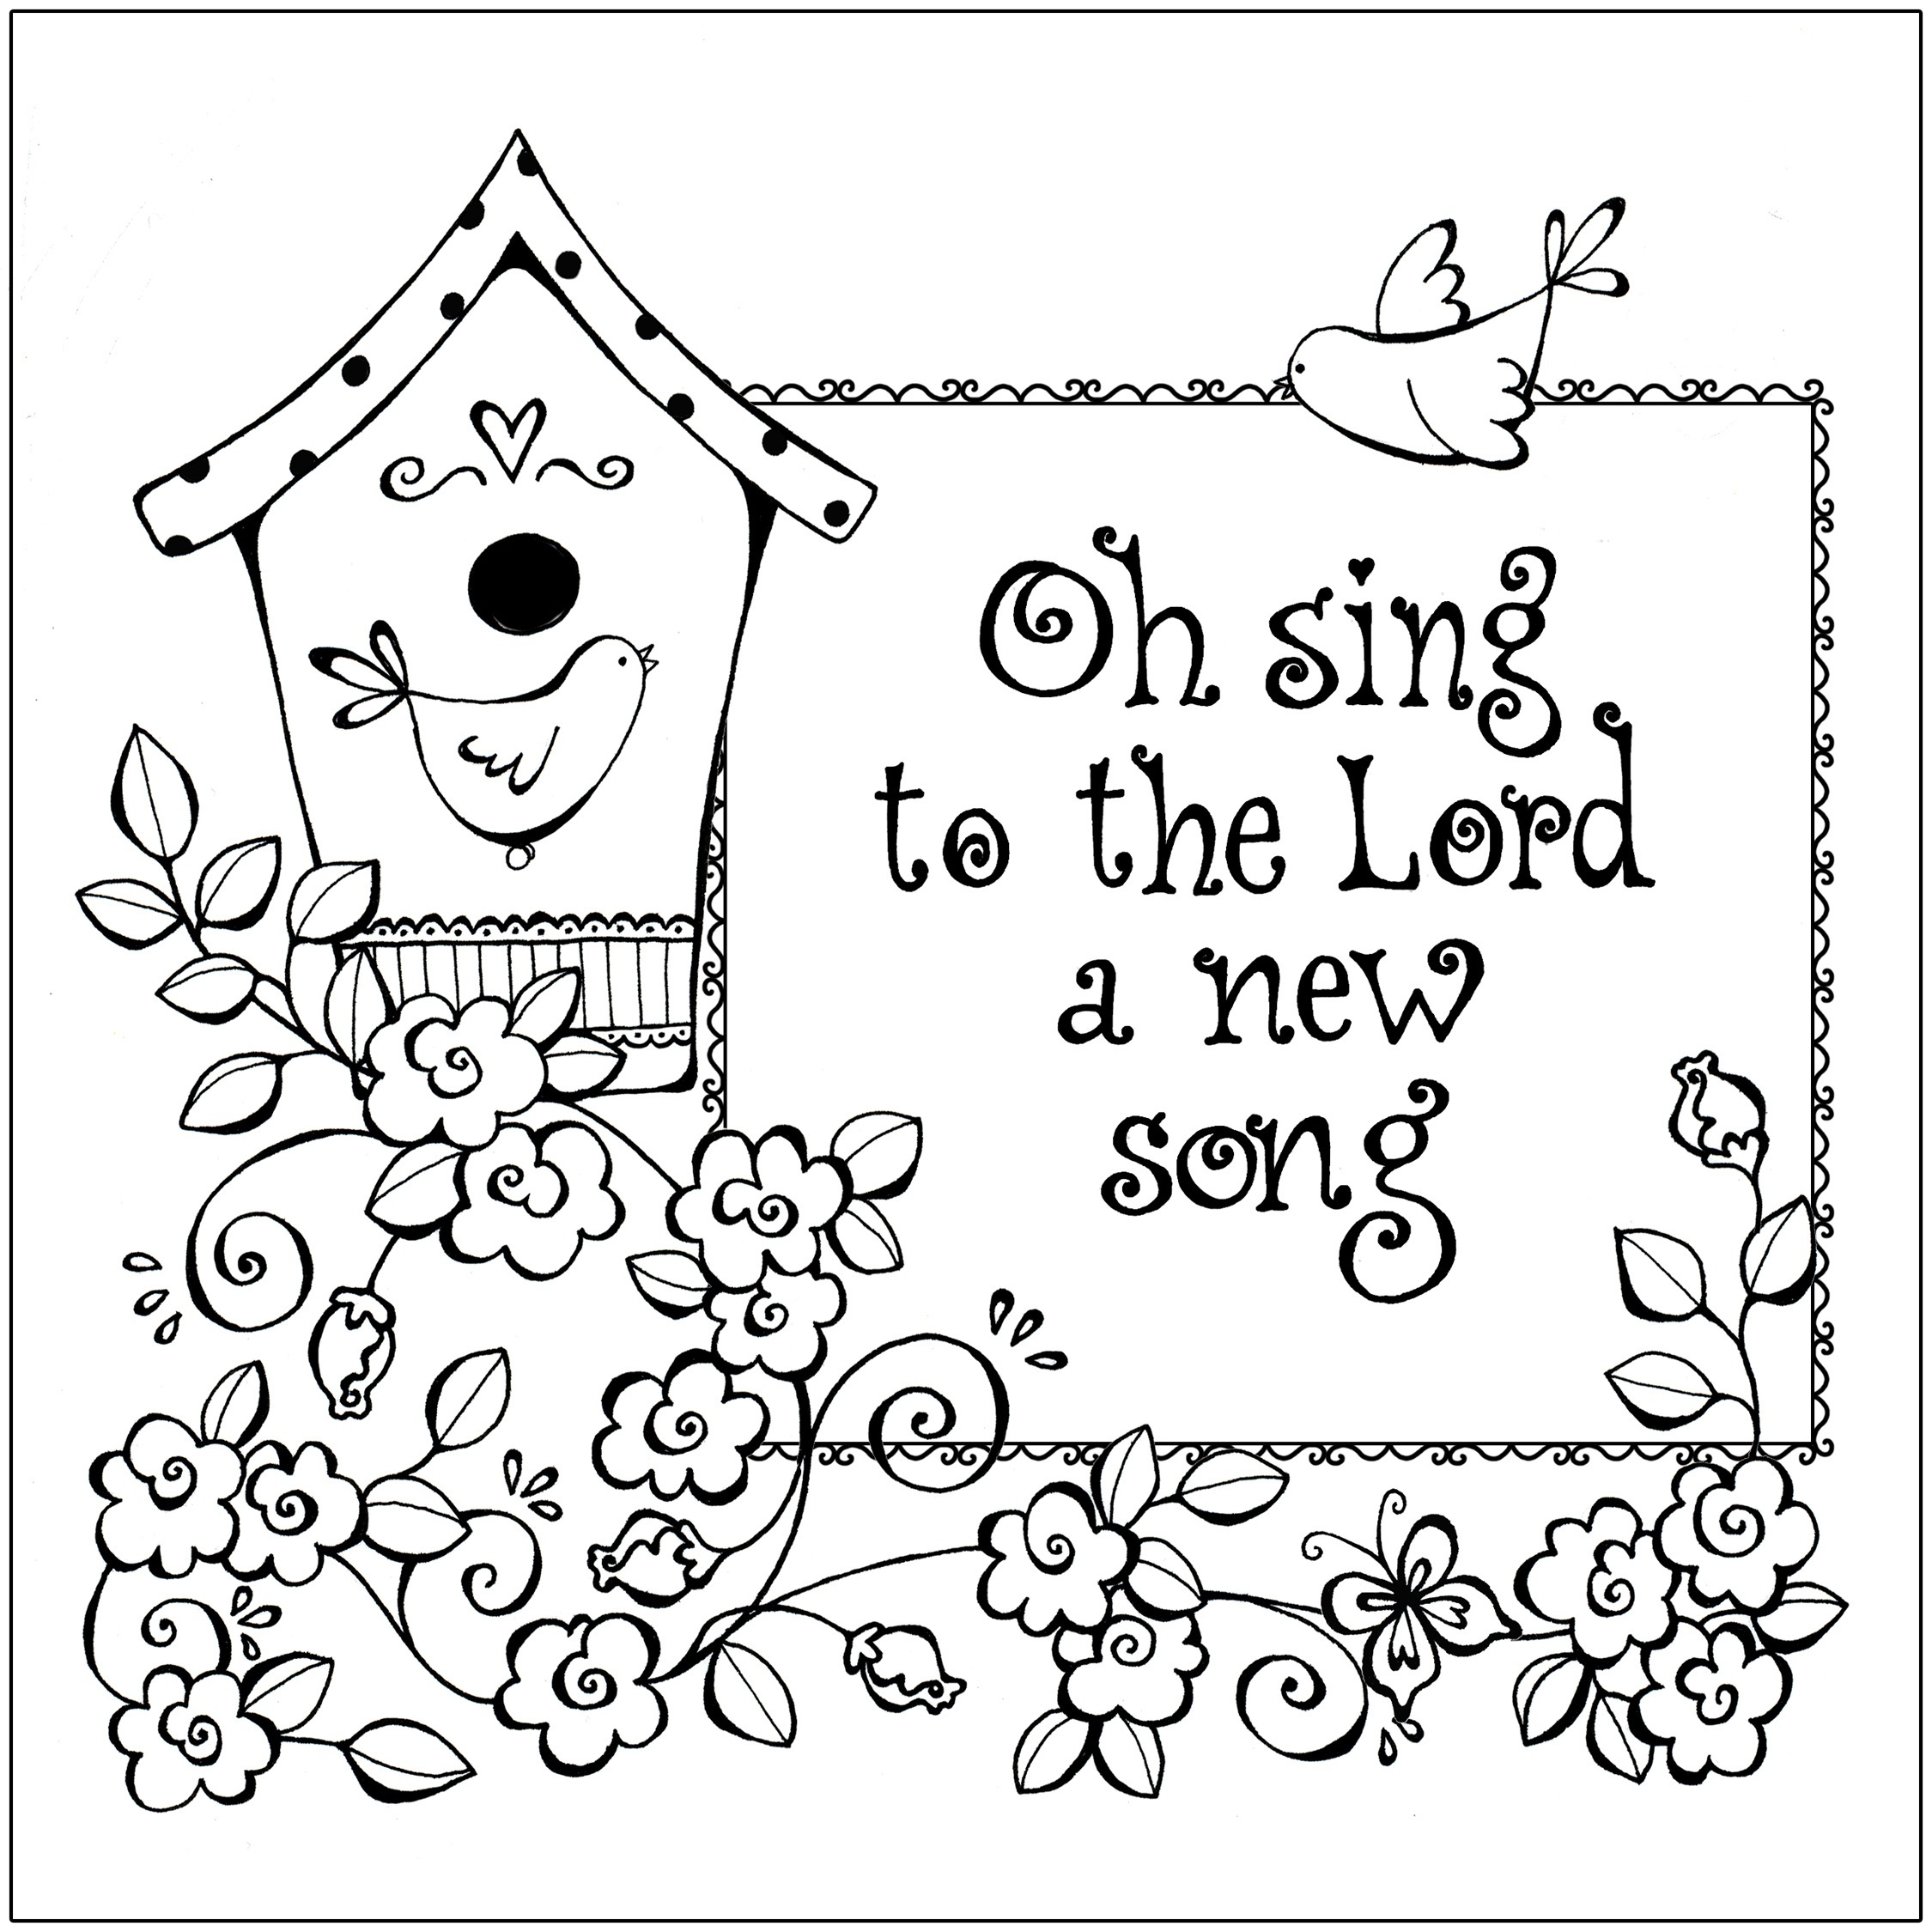 Coloring Ideas : Coloring Ideas Pages Printable For Bible - Free Printable Bible Coloring Pages